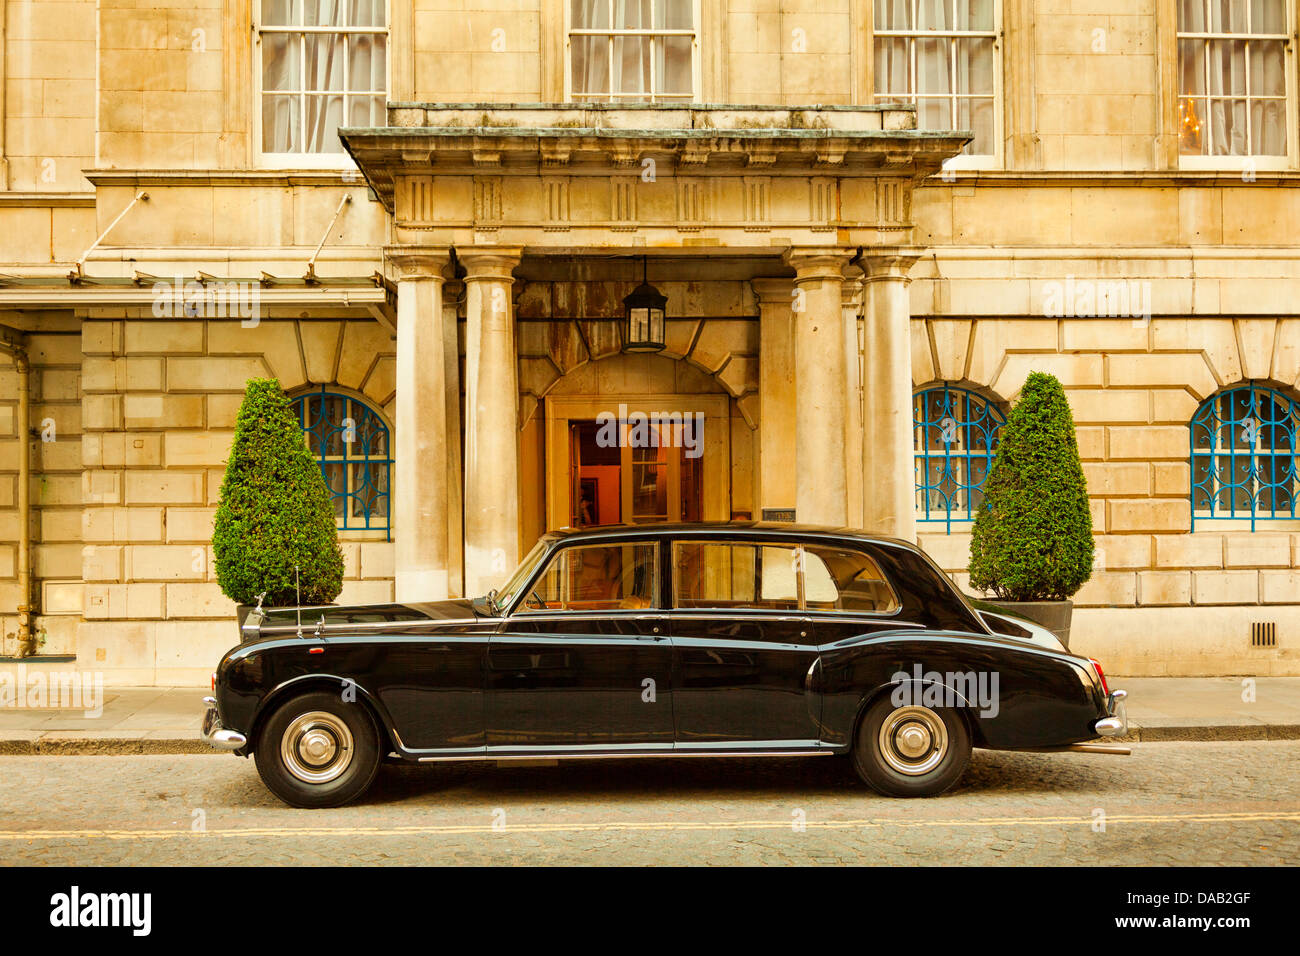 Rolls-Royce on the drive of a Mansion House,London,England - Stock Image